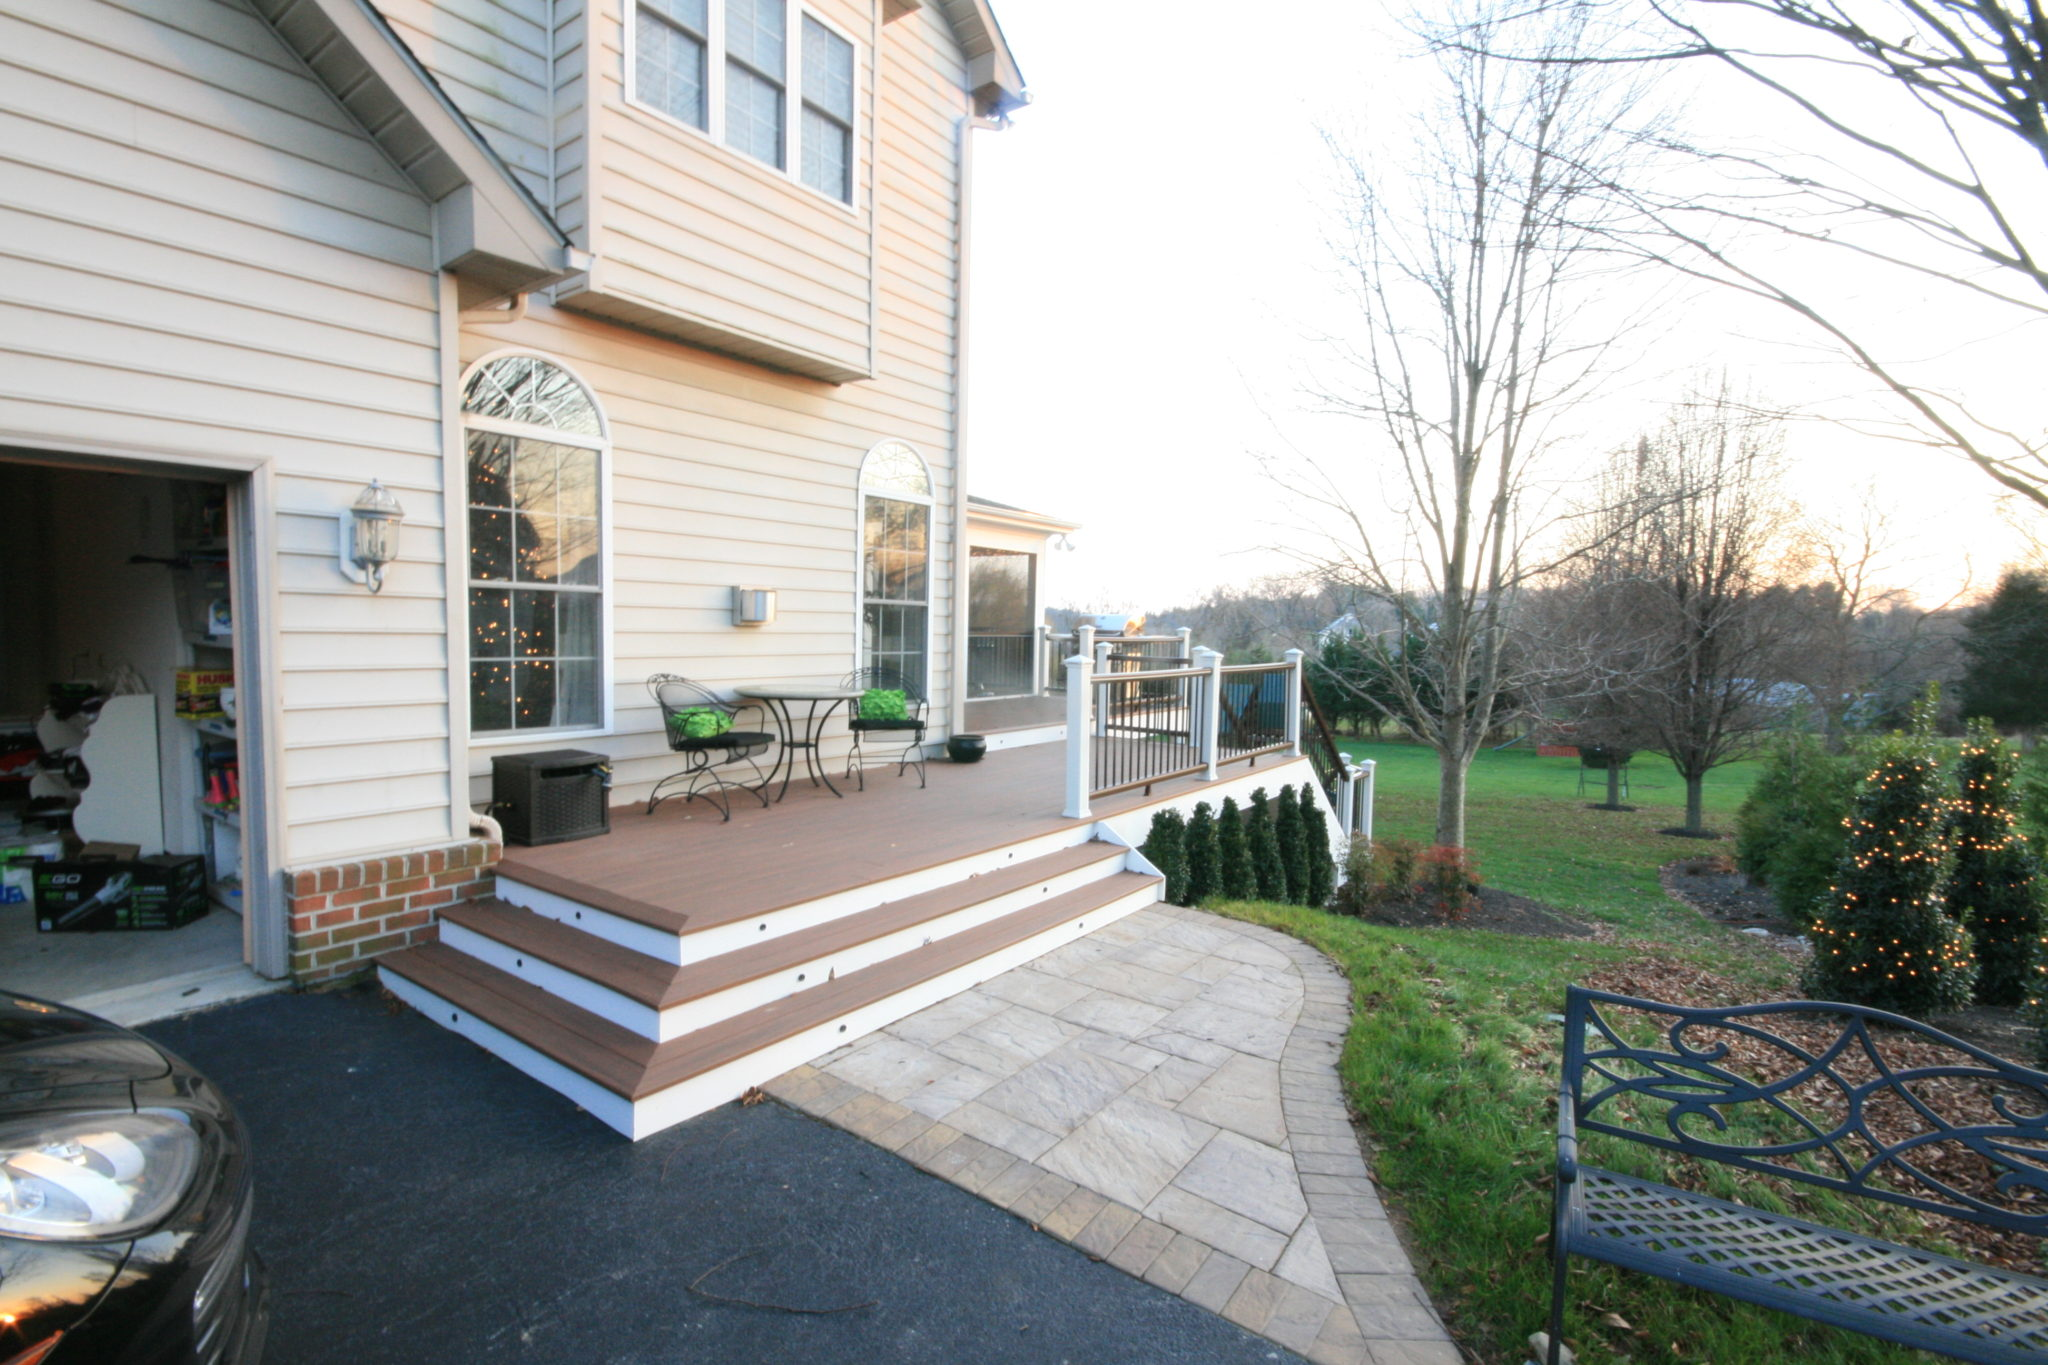 Maryland Screen Porch And Deck Contractor Builds Screen. Stone Patio Cleaner Uk. Outdoor Patio Deck Decor. Outside Patio Coffee Tables. Patio Chairs Black. Vinyl Patio Swing. Paver Patio Cheap. Stone Patio Sloped Backyard. Decorating Patio For Party